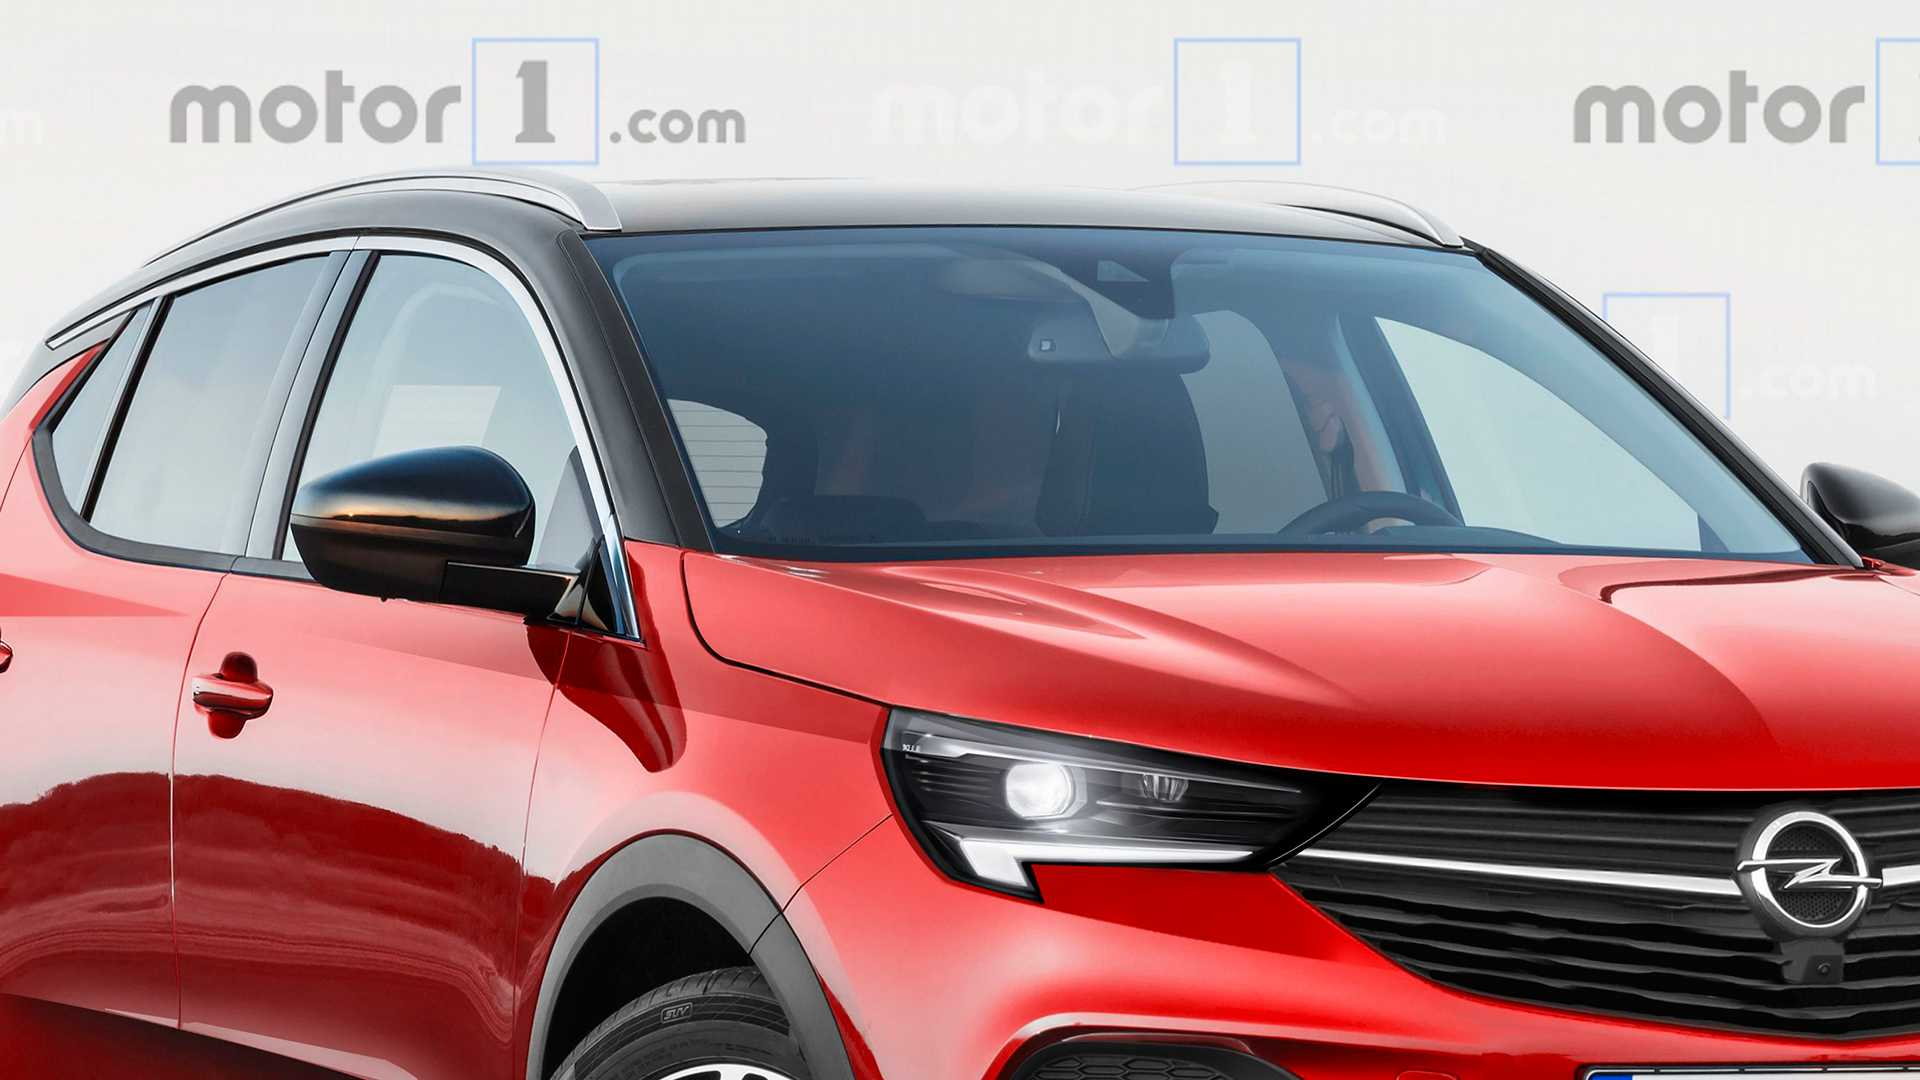 82 New Uj Opel Mokka X 2020 Concept And Review